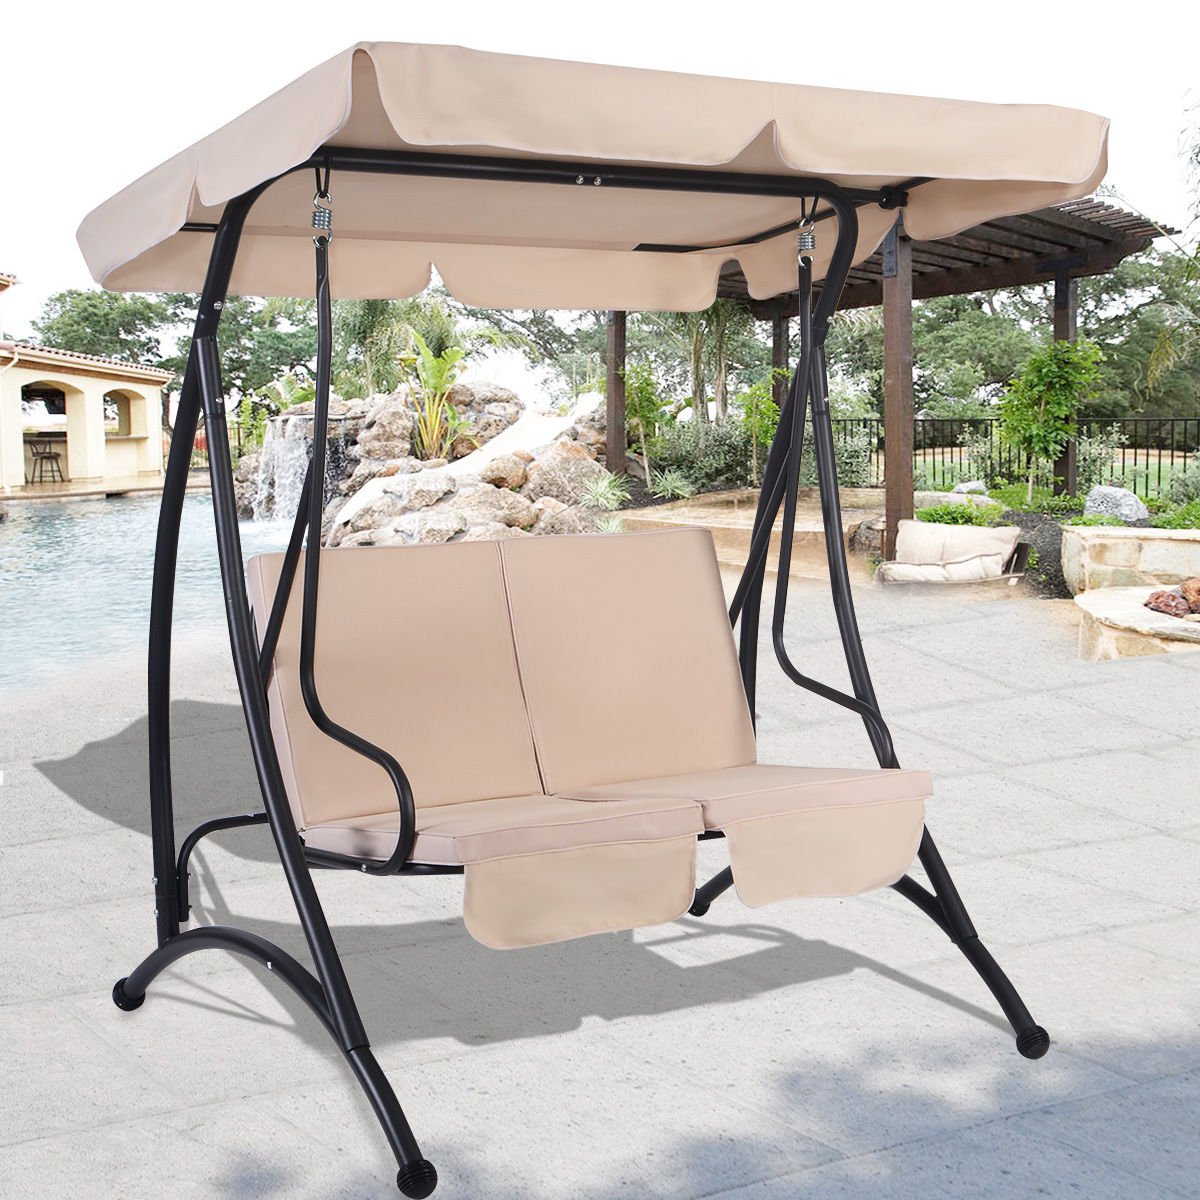 Goplus Beige 2 Person Canopy Porch Swing : 2 person canopy swing - memphite.com